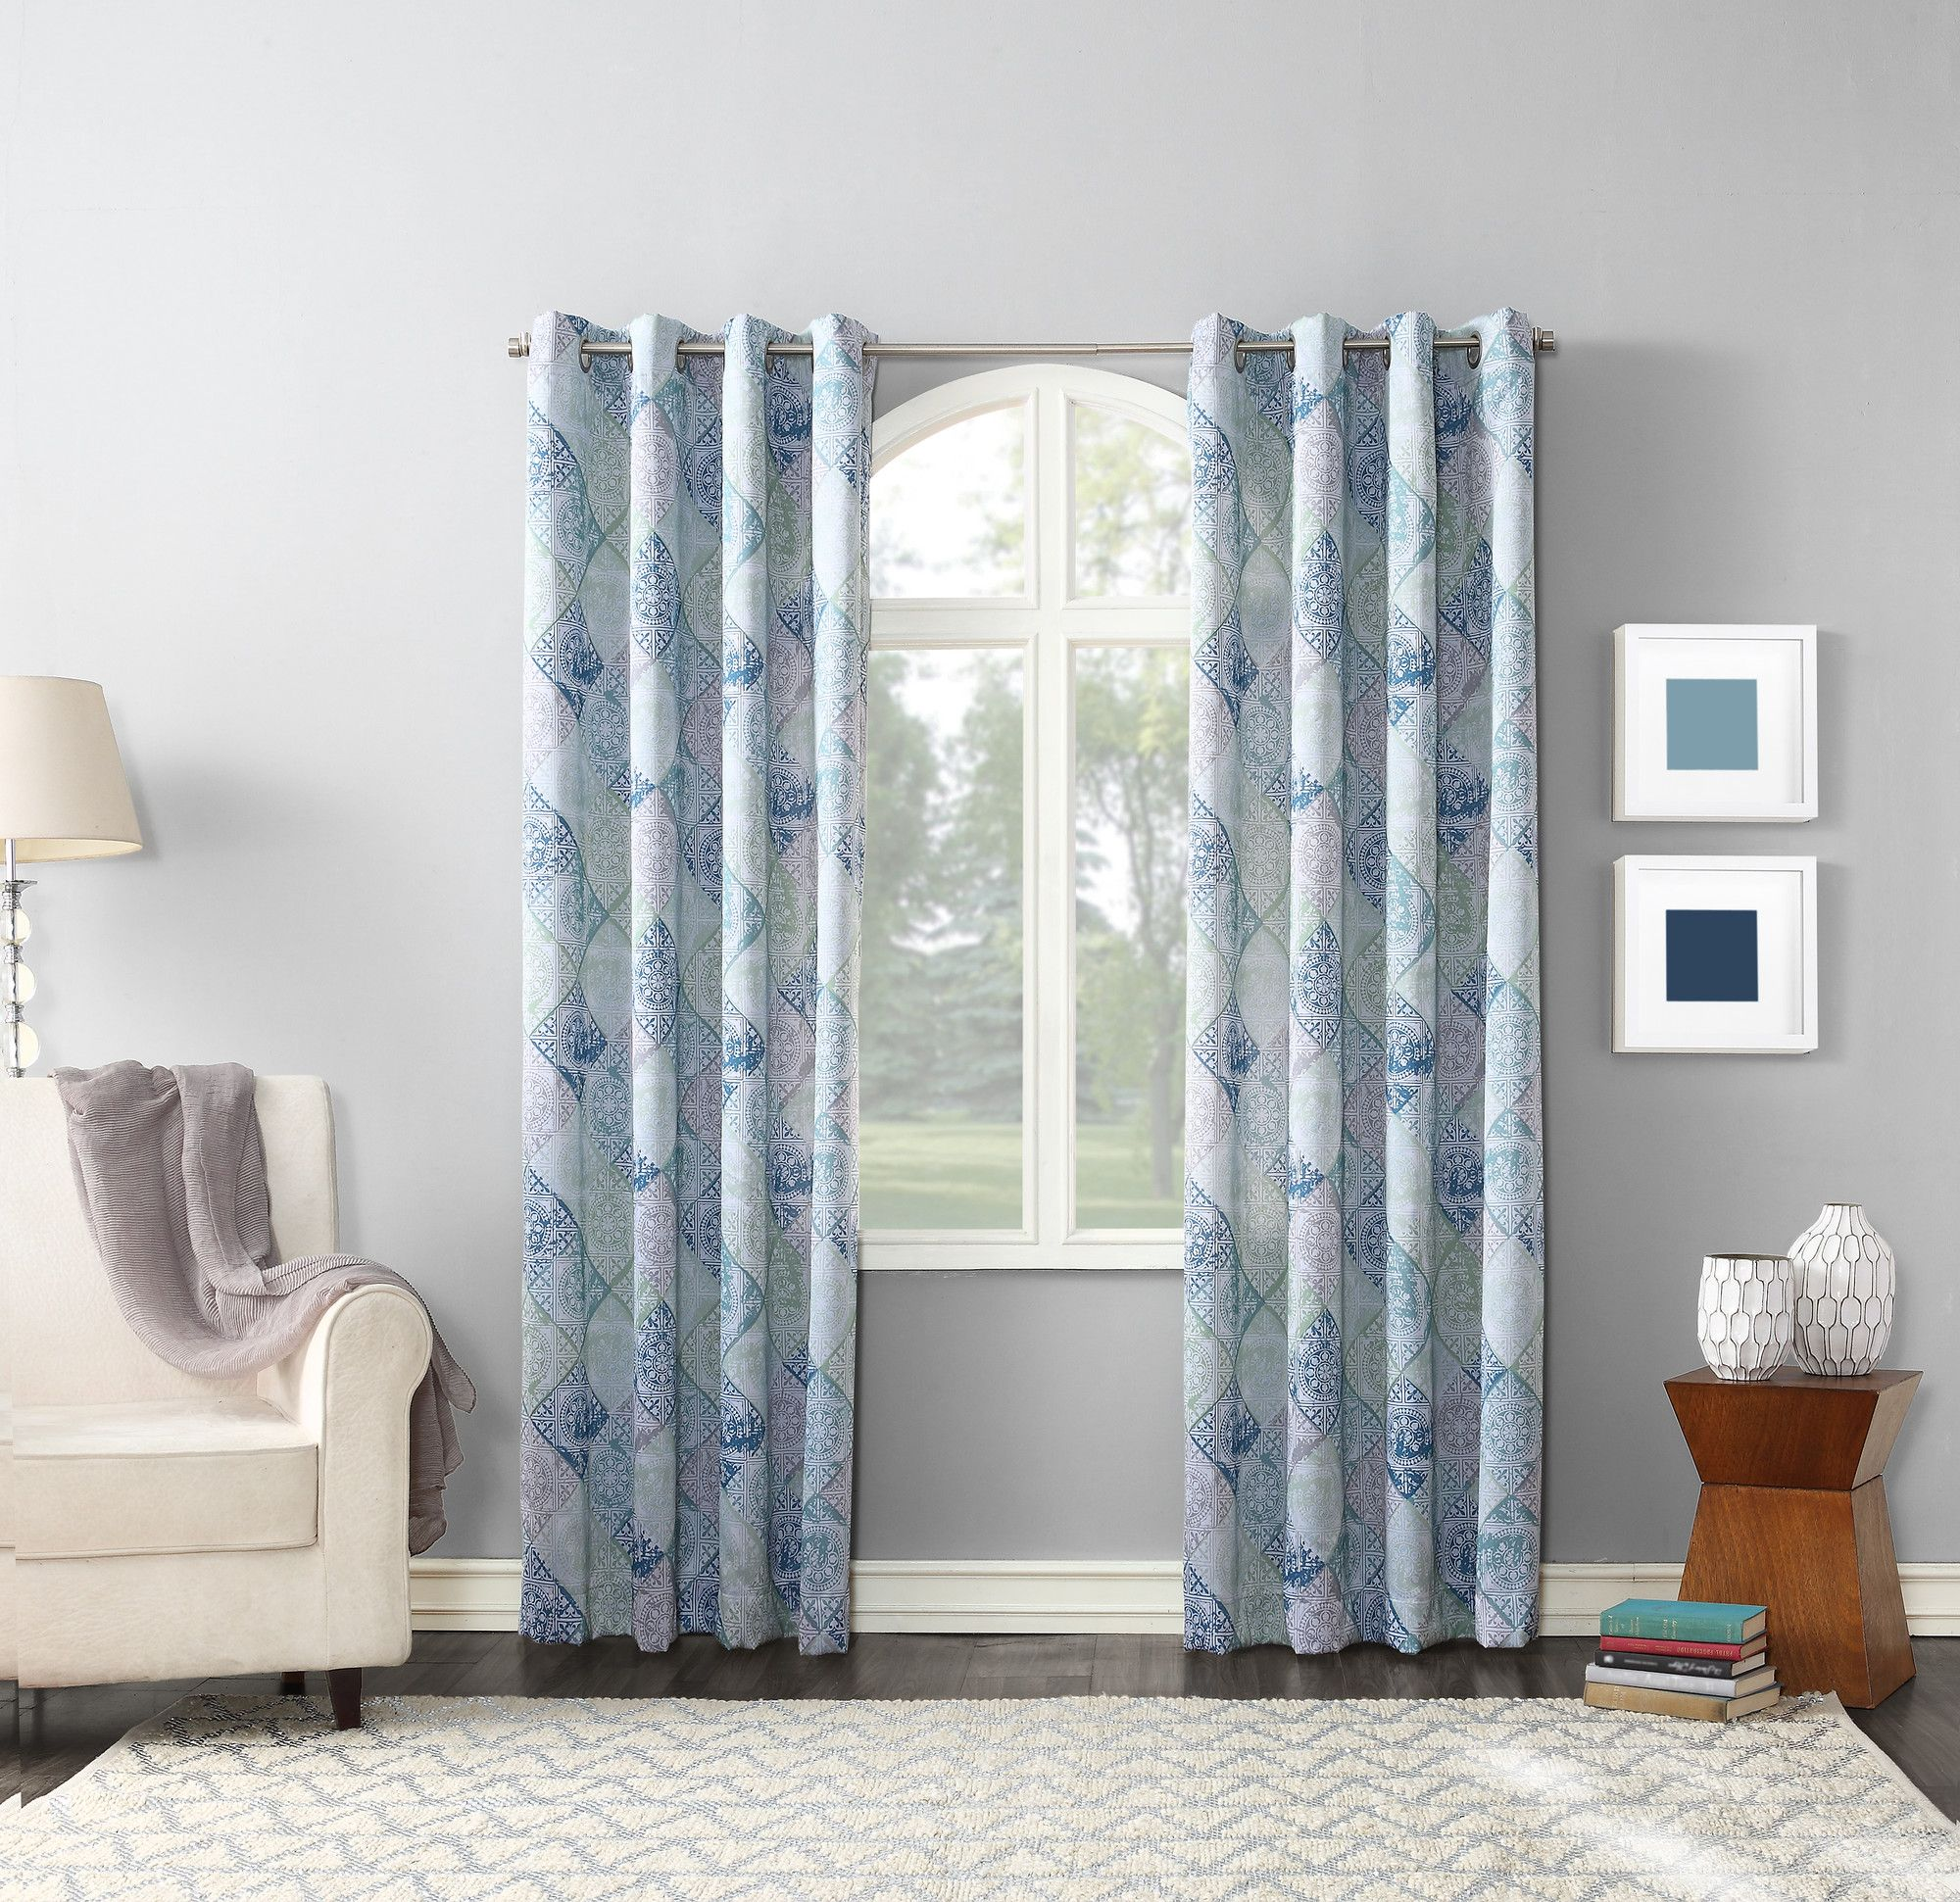 remodeling ideas in with curtain home royal blue stylish and charming white panels